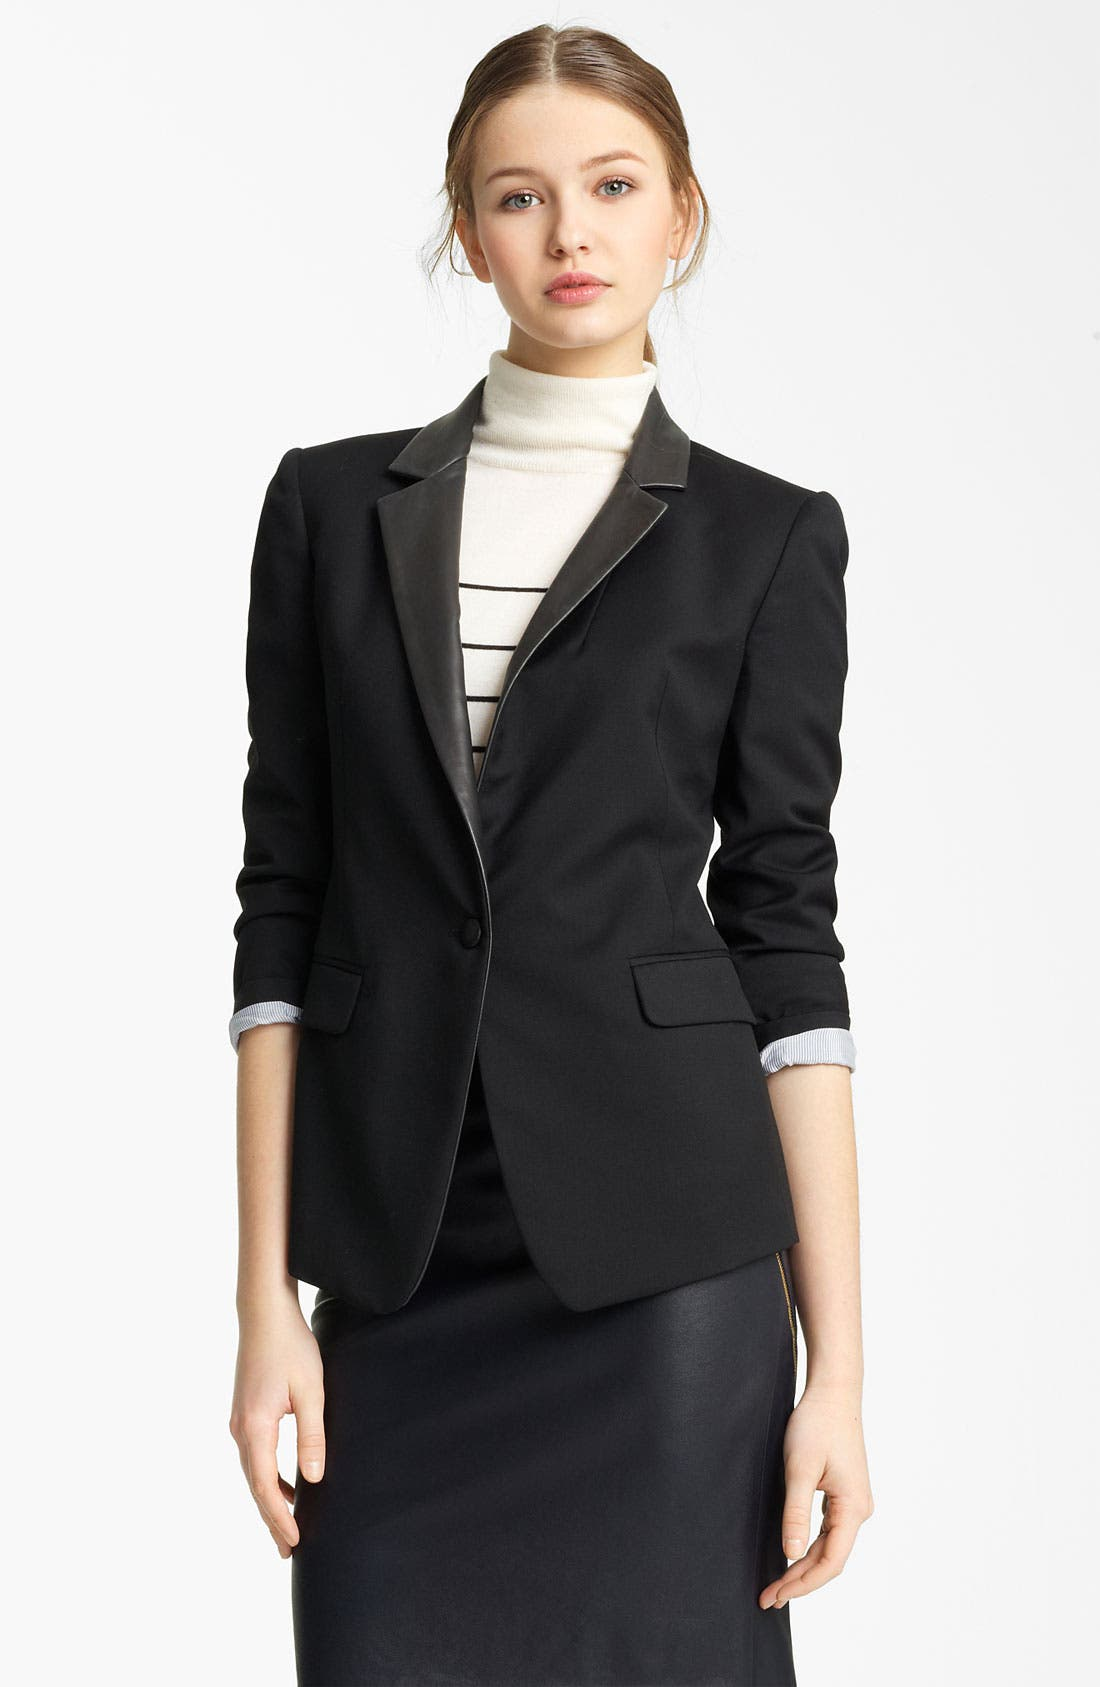 Alternate Image 1 Selected - Band of Outsiders Leather Trim Blazer